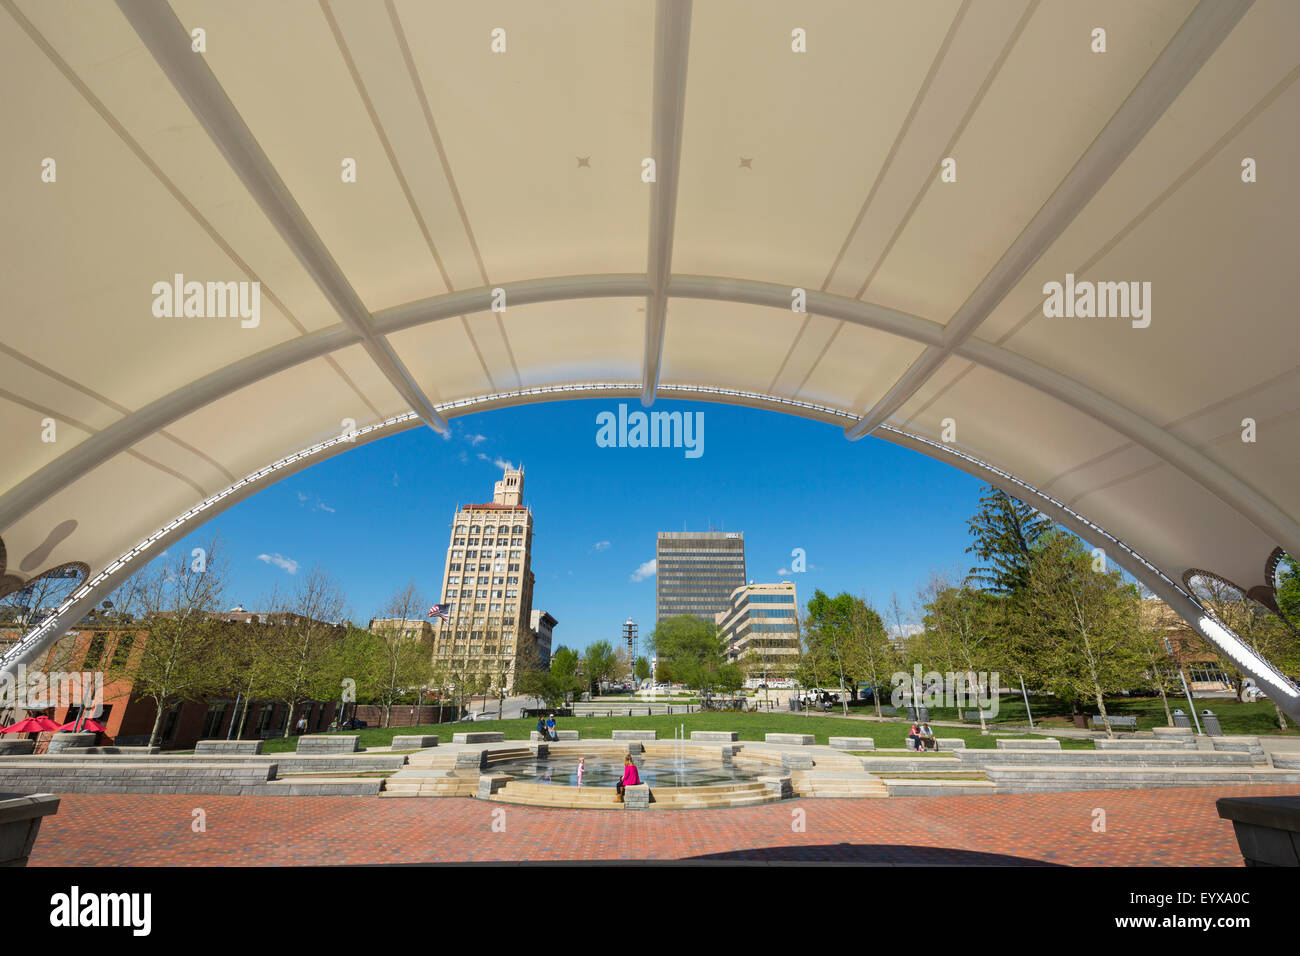 BANDSTAND PACK SQUARE PARK DOWNTOWN ASHEVILLE BUNCOMBE COUNTY NORTH CAROLINA USA - Stock Image